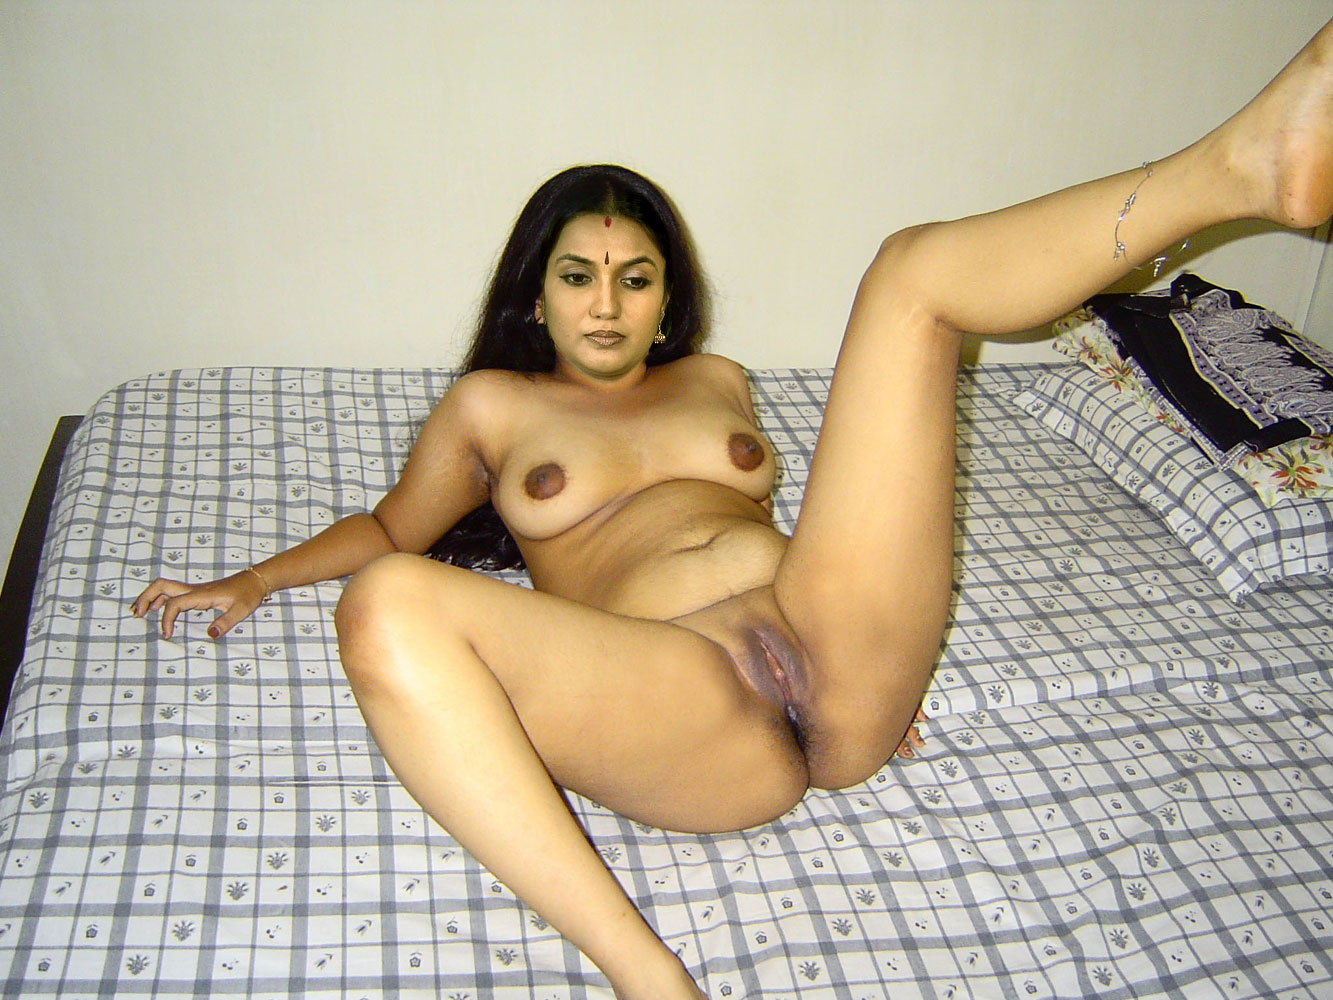 tamil boy sex image with many girls